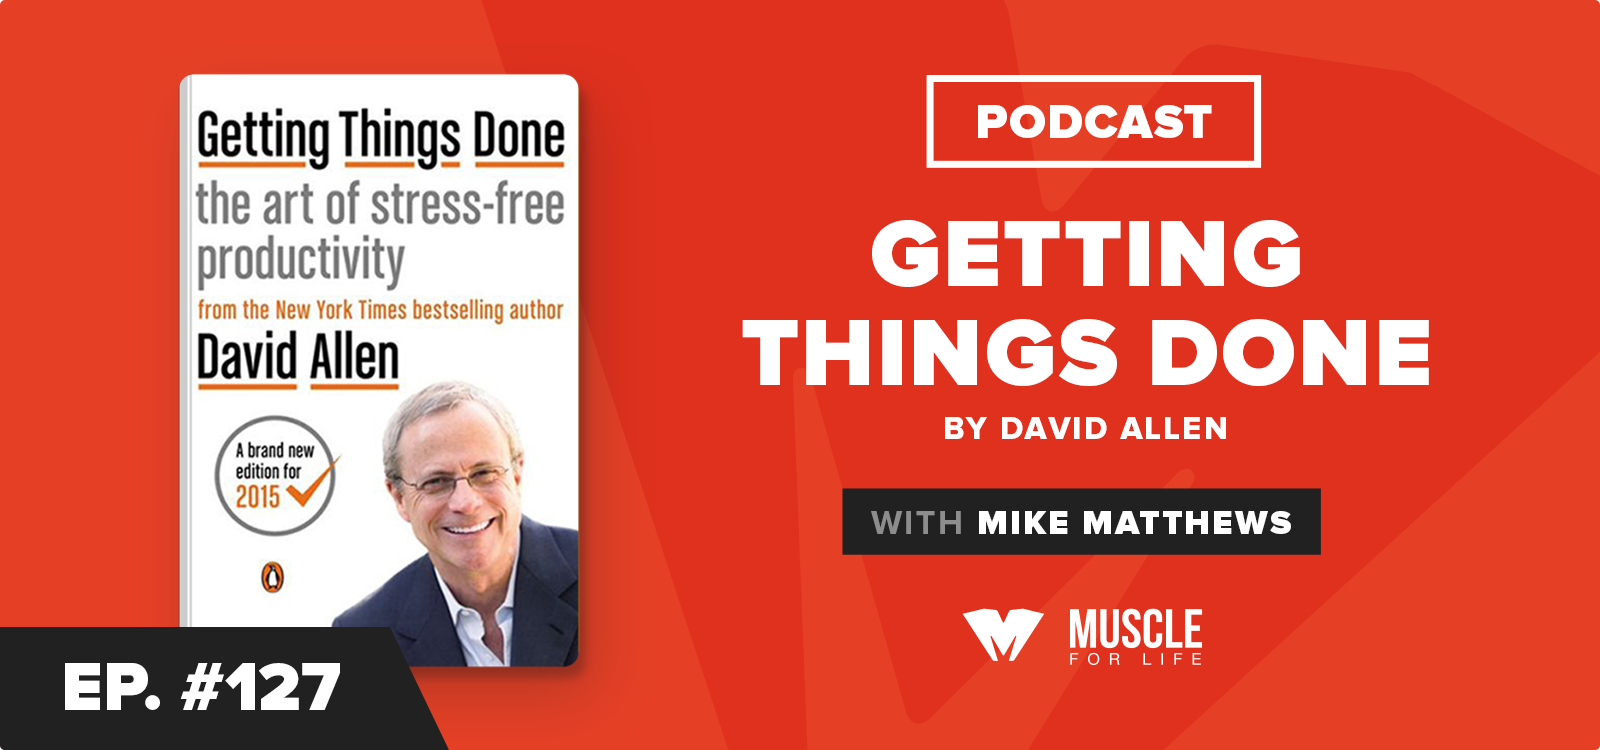 MFL Book Club Podcast: Getting Things Done by David Allen